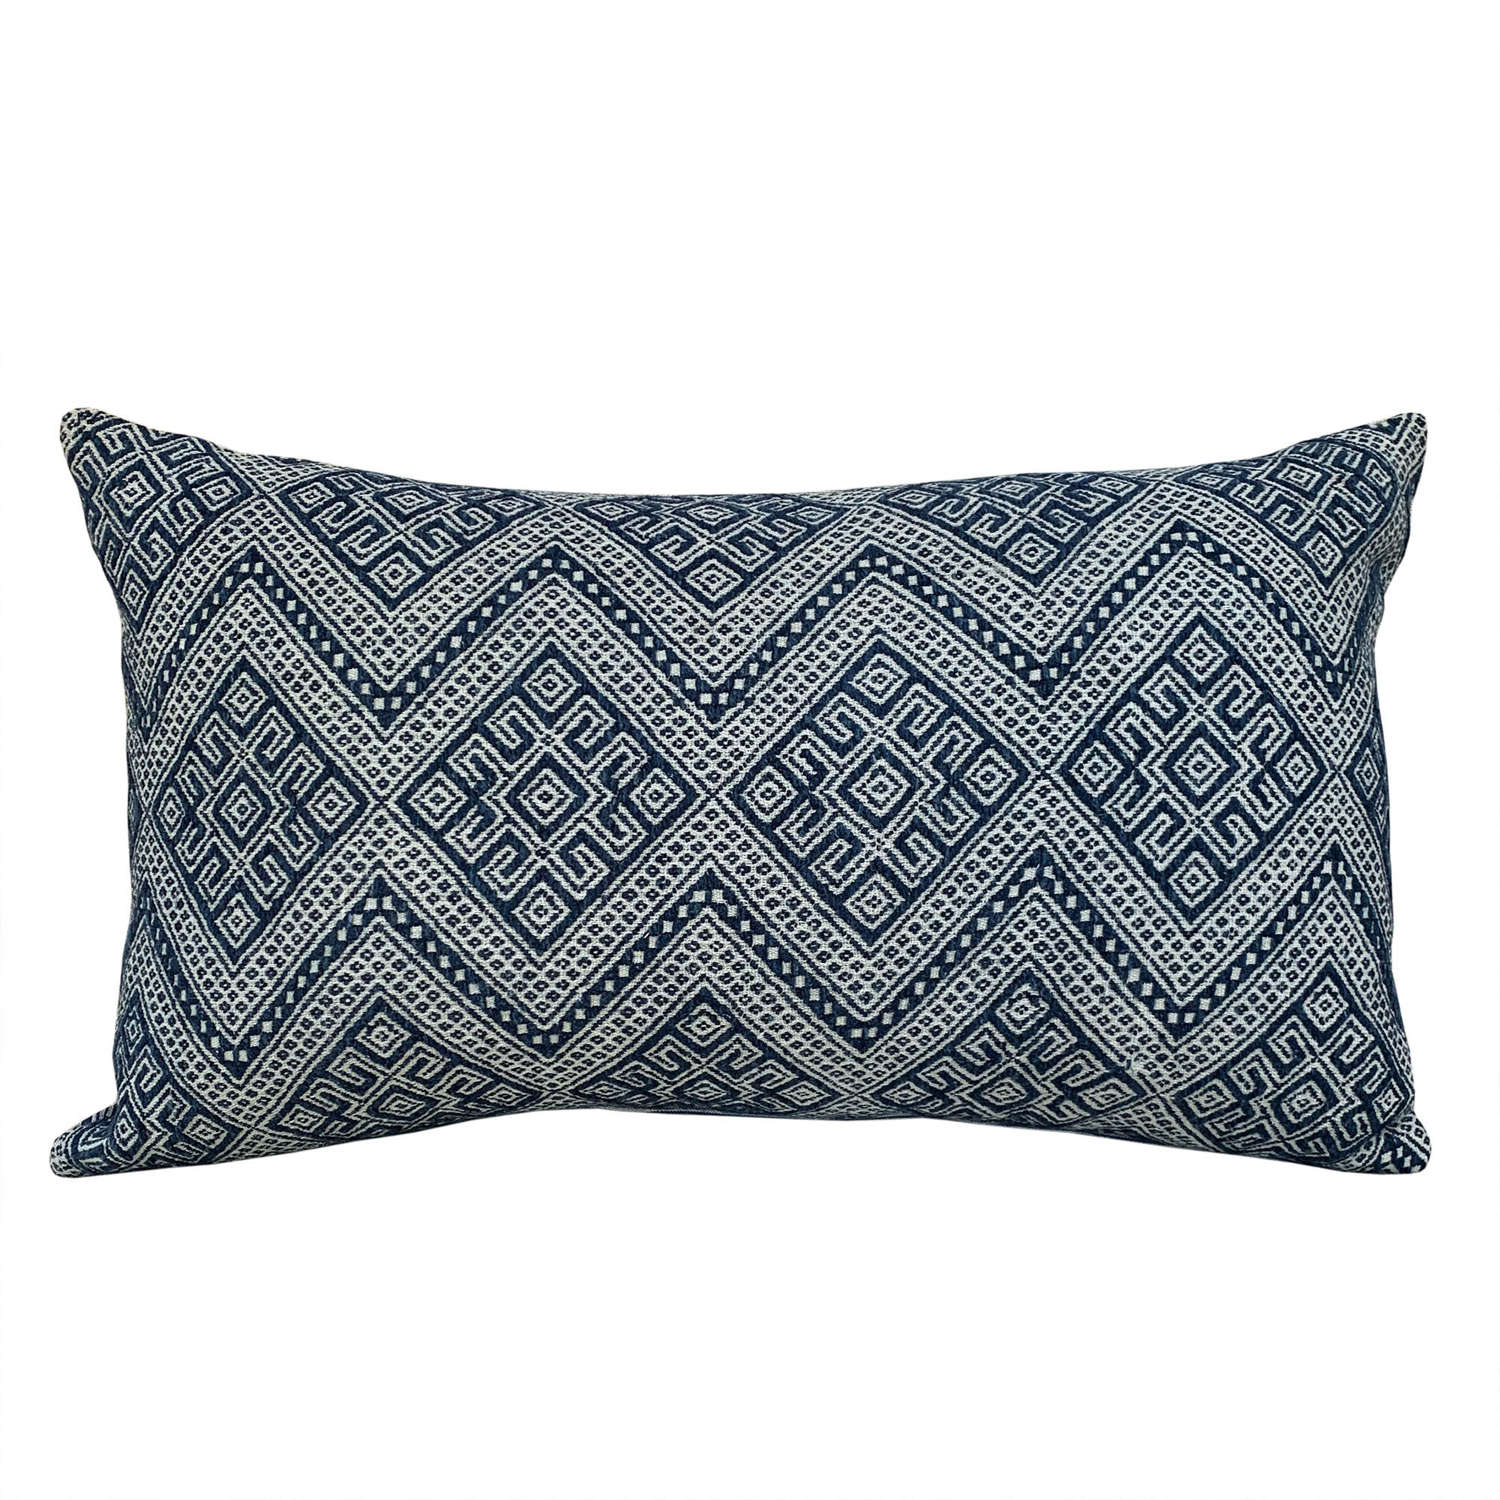 Indigo wedding blanket cushions